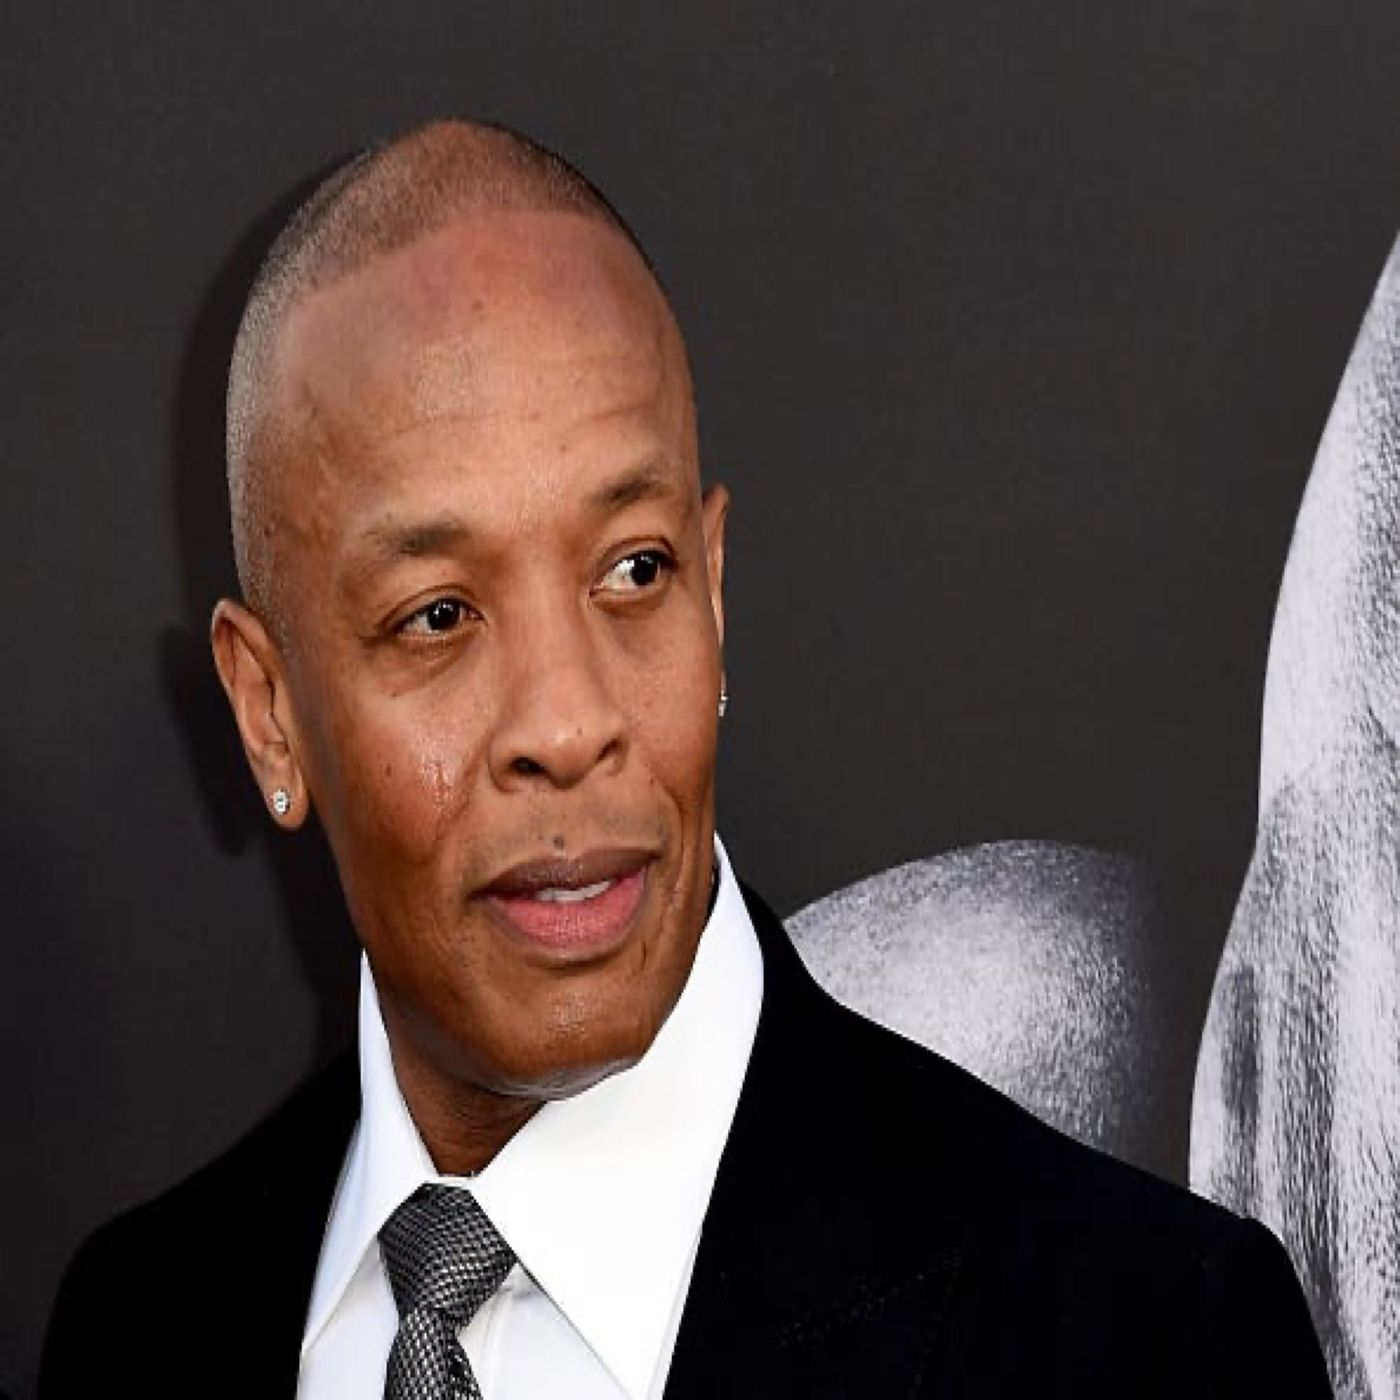 Dr. Dre in ICU after suffering brain aneurysm: Report Say